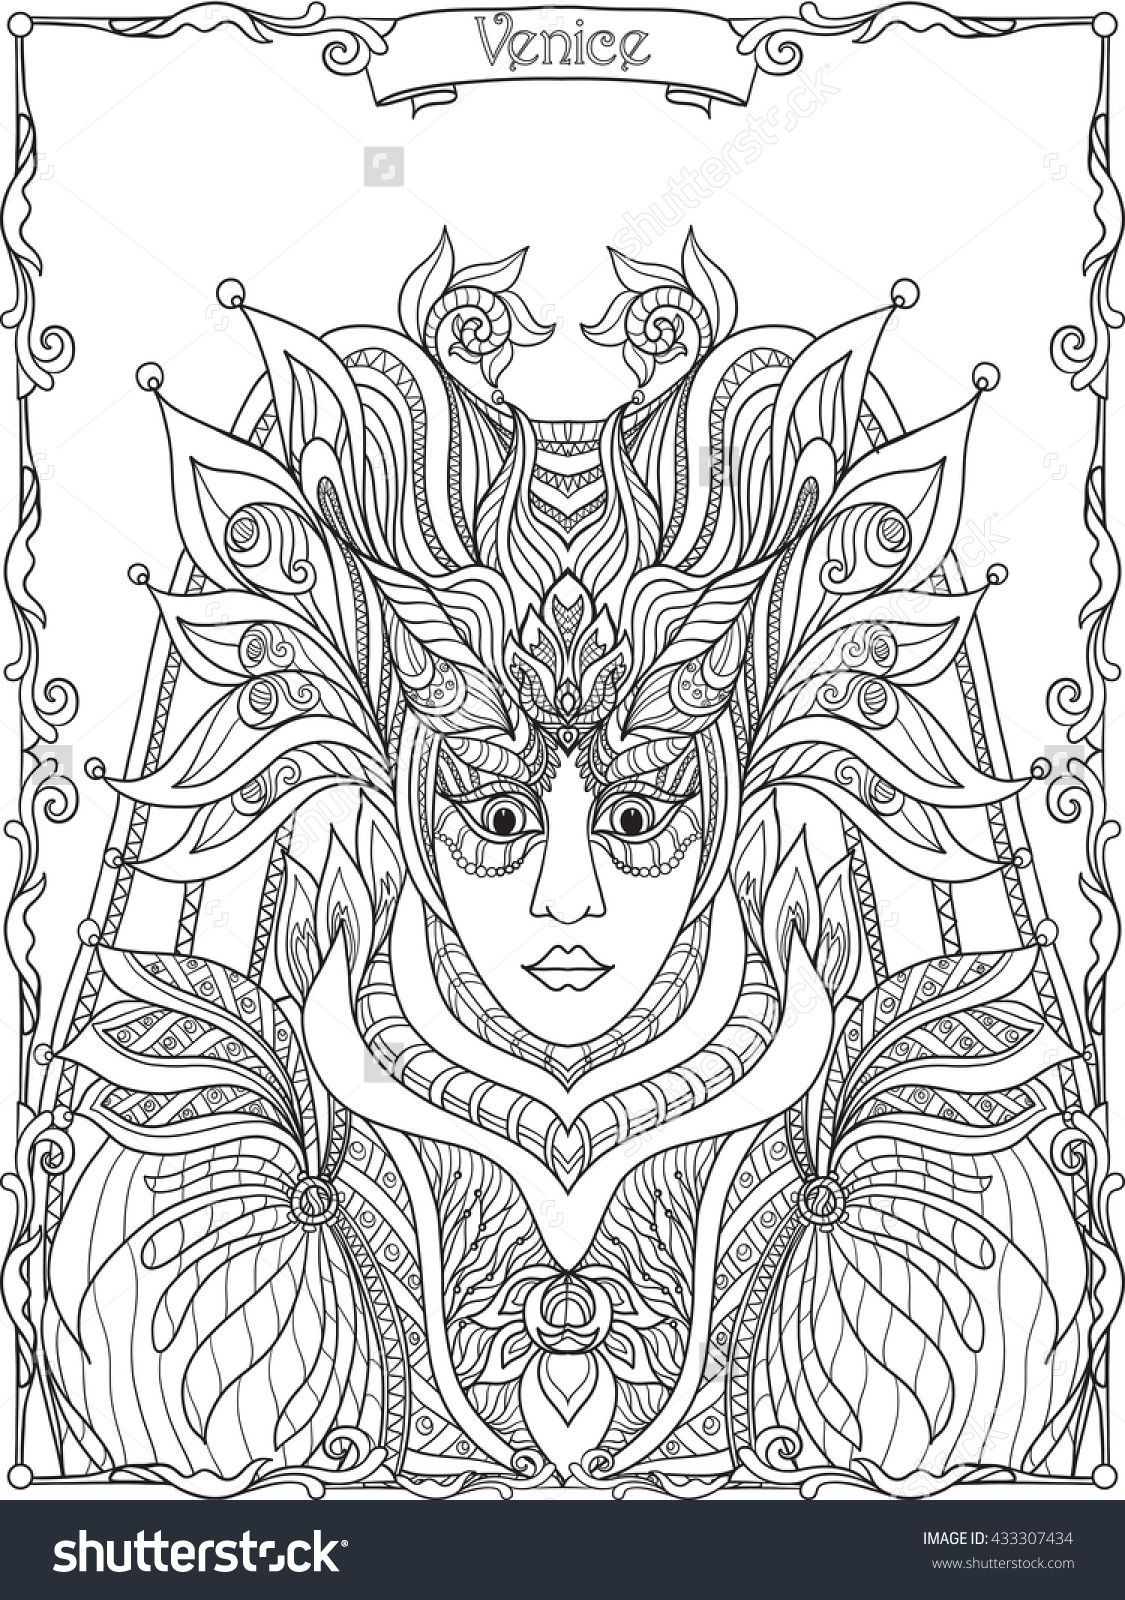 Adult Coloring Pages Venetian Masks - Worksheet & Coloring Pages